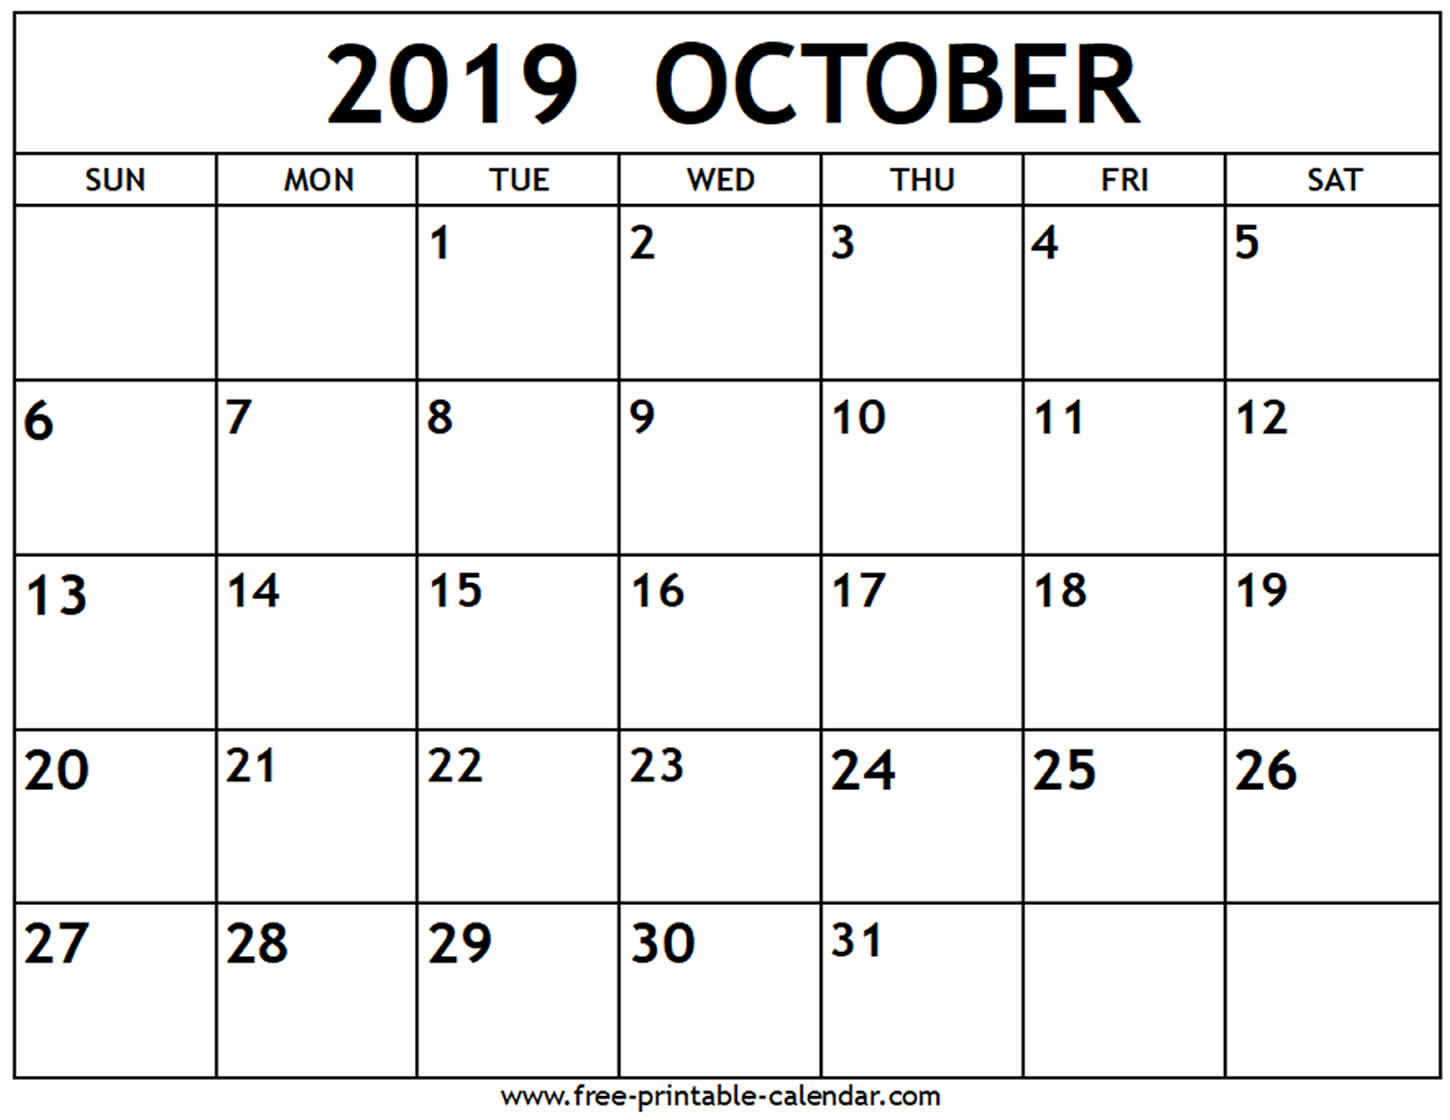 October 2019 Calendar – Free-Printable-Calendar – Nycelects throughout Free Printable 2020 Waterproof Calendars